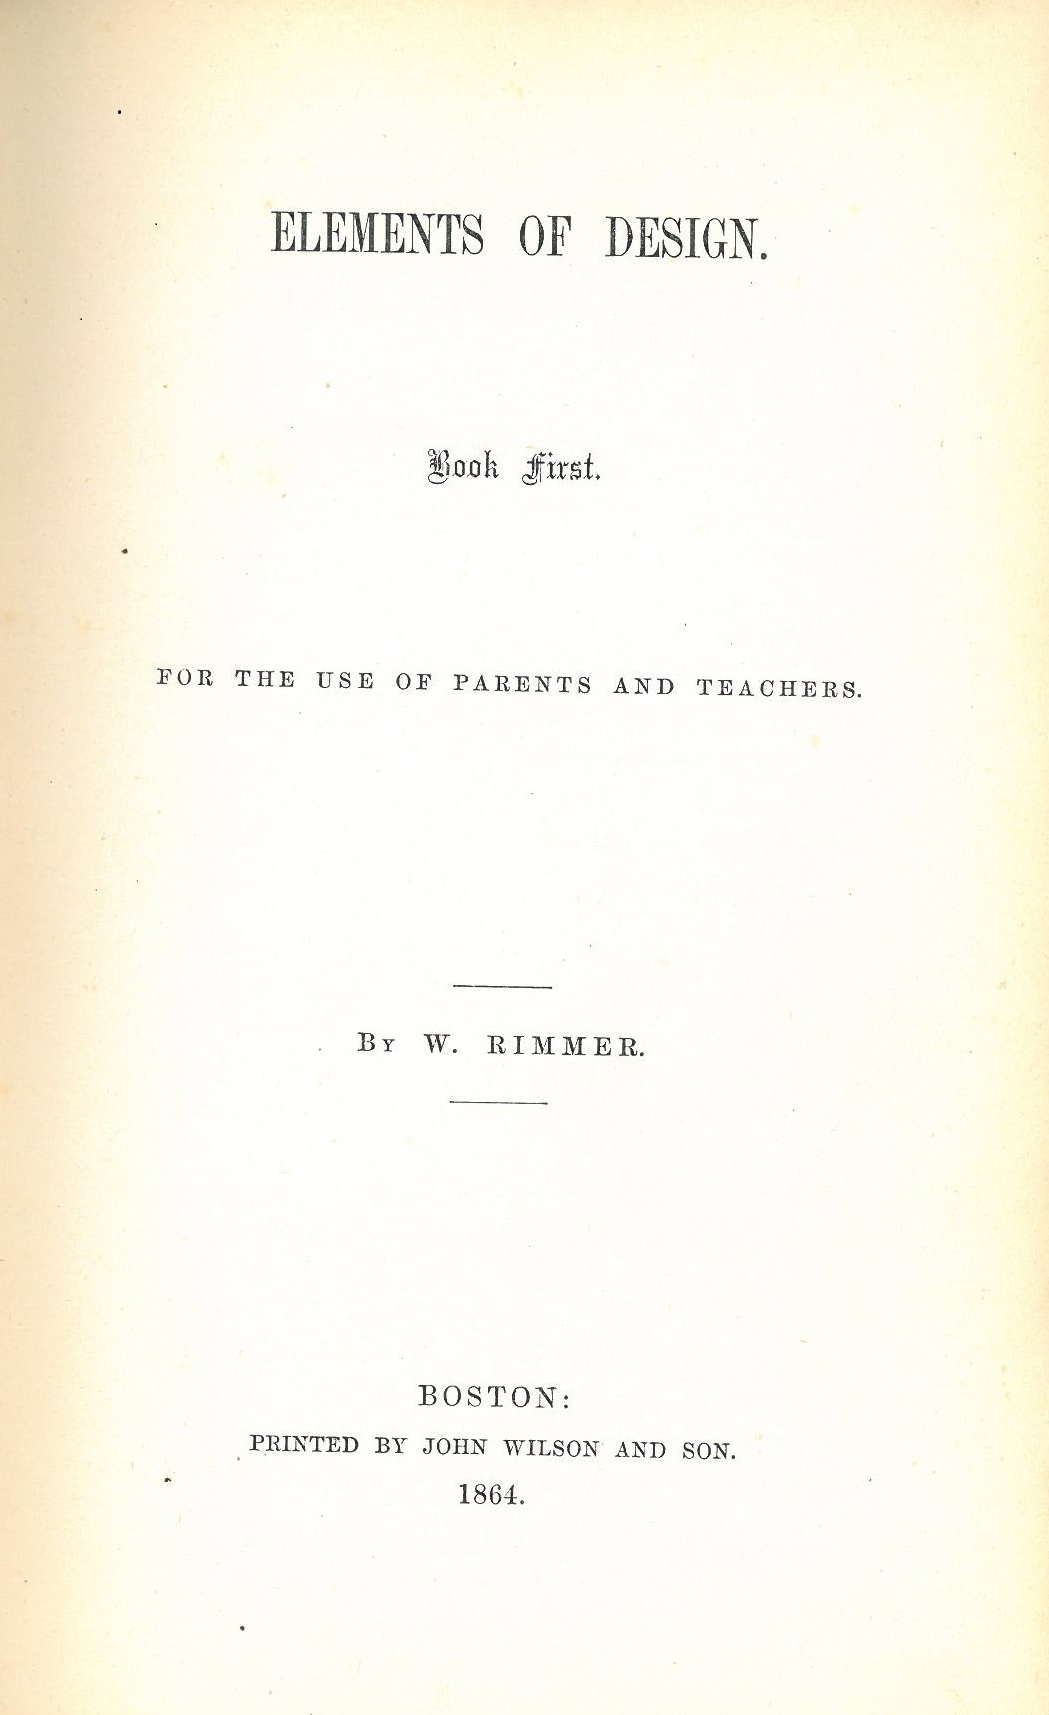 Title page from Elements of Design by William Rimmer (Boston: S.R. Urbino, 1894).